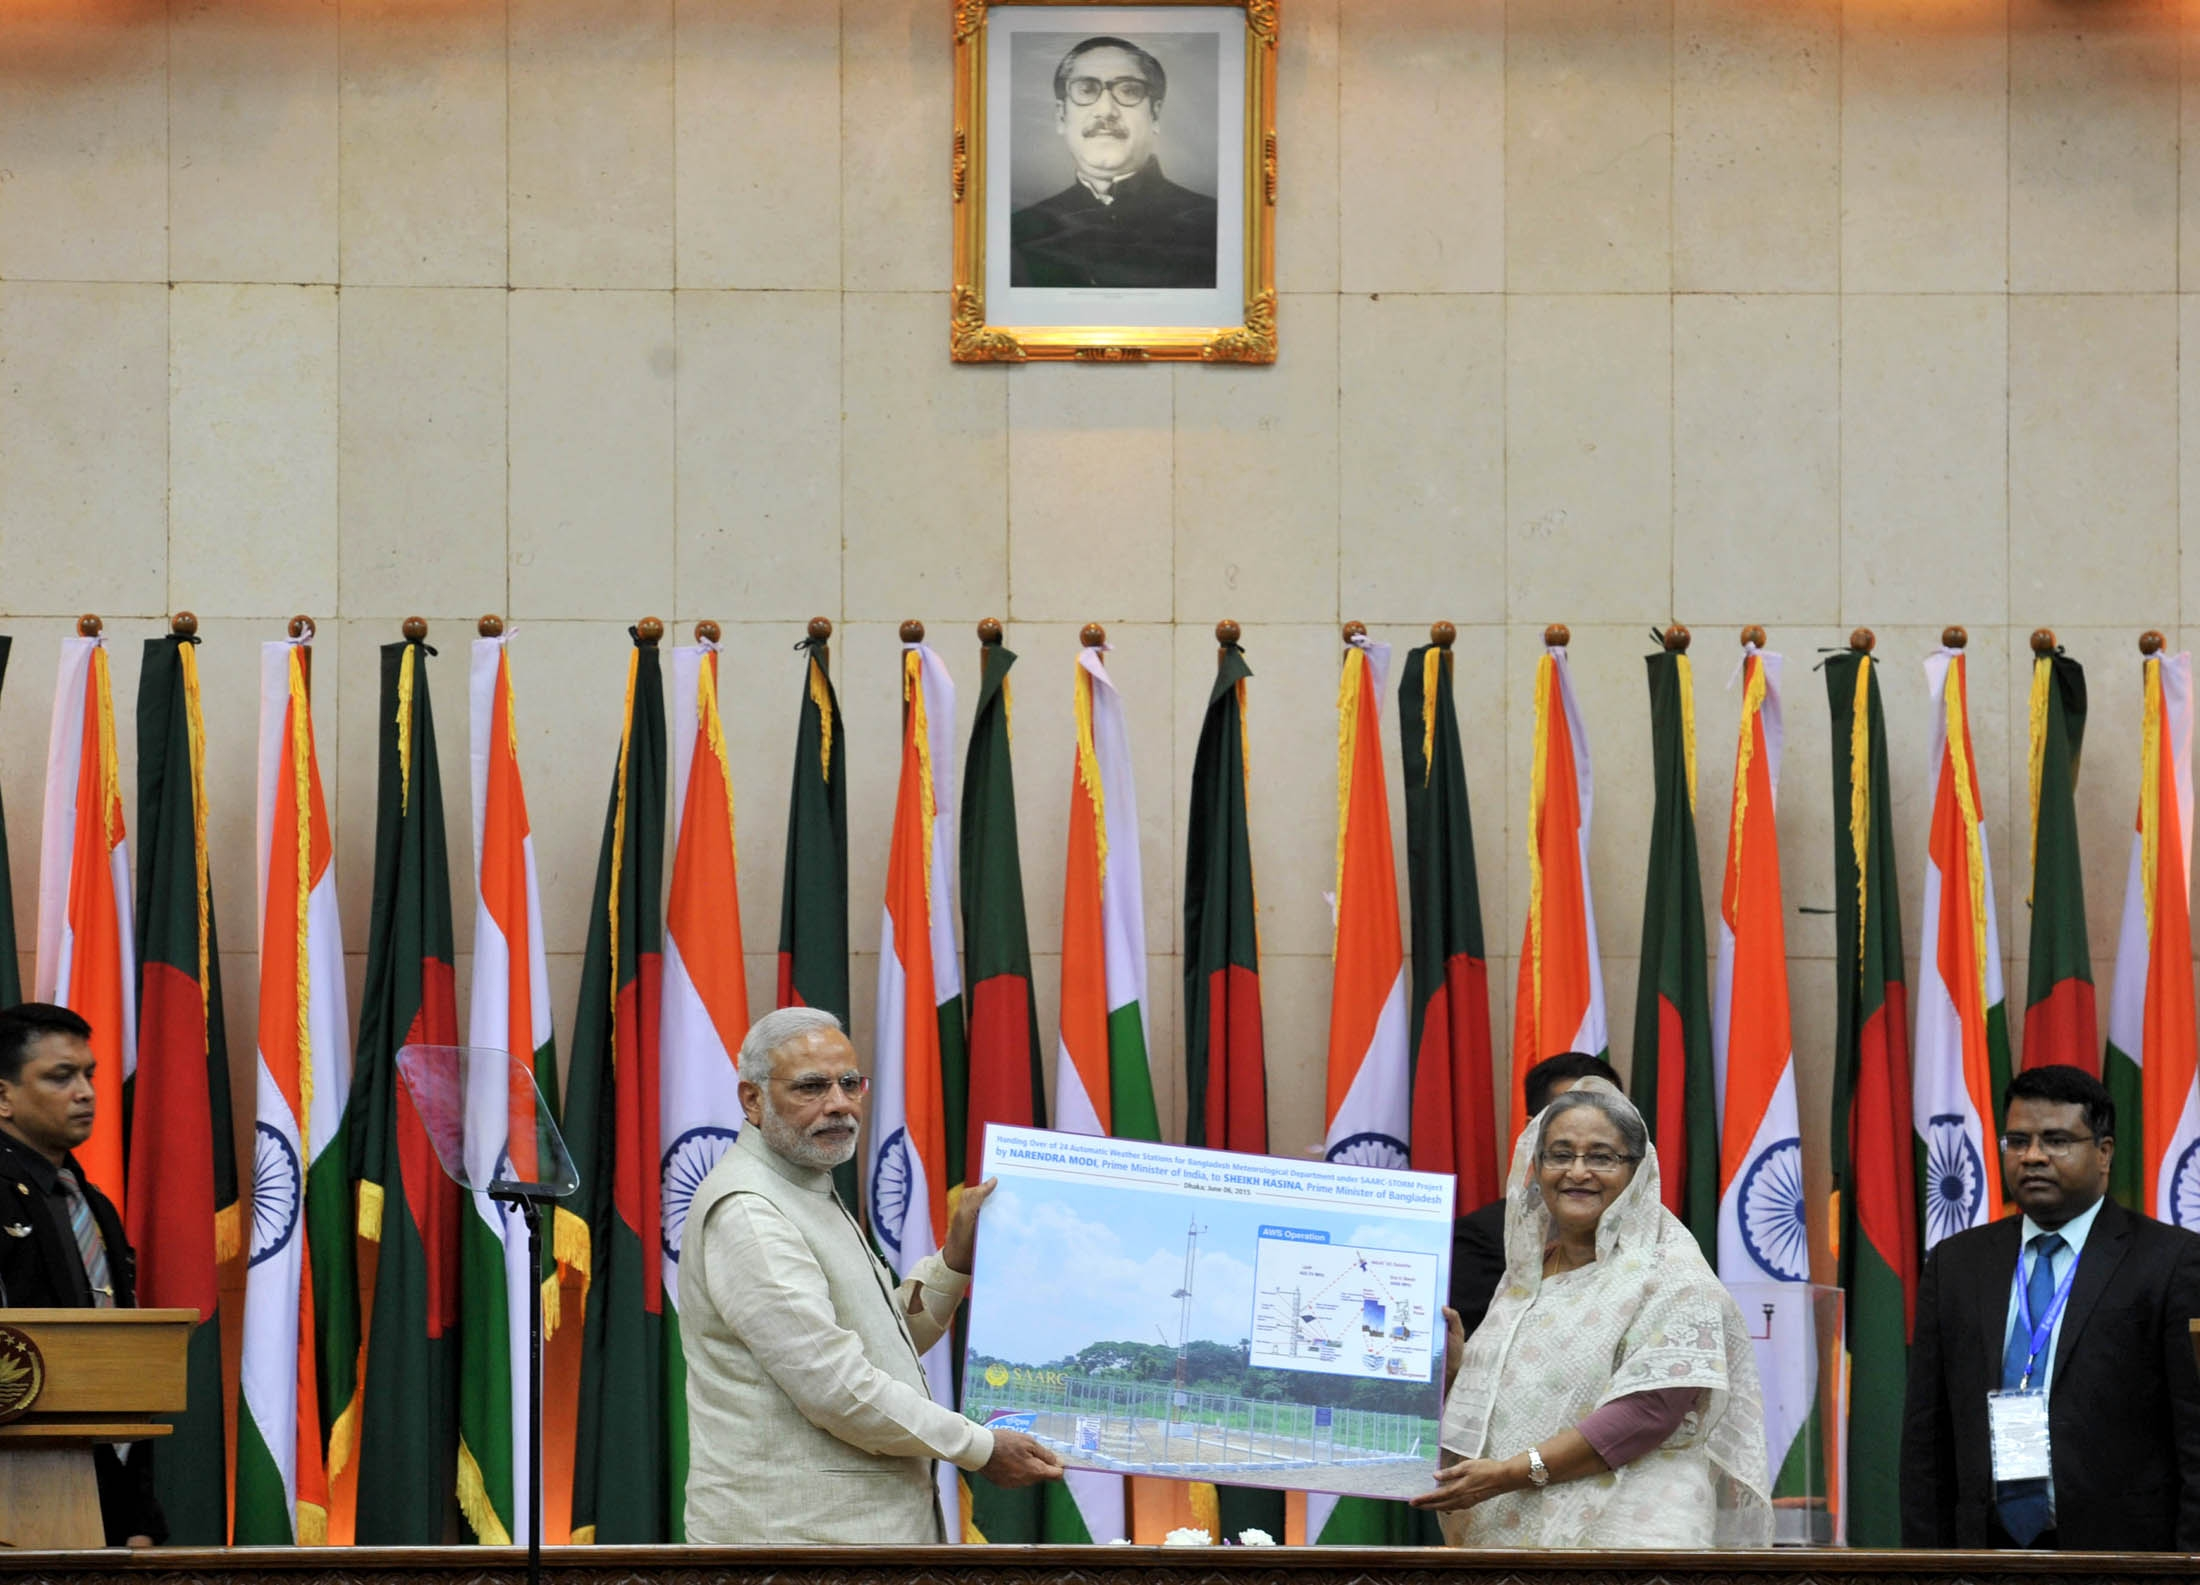 Prime Minister Narendra Modi and the Bangladesh Prime Minister Sheikh Hasina exchanging the memorabilia, in Dhaka, Bangladesh on June 6, 2015. Photo: IANS/PIB